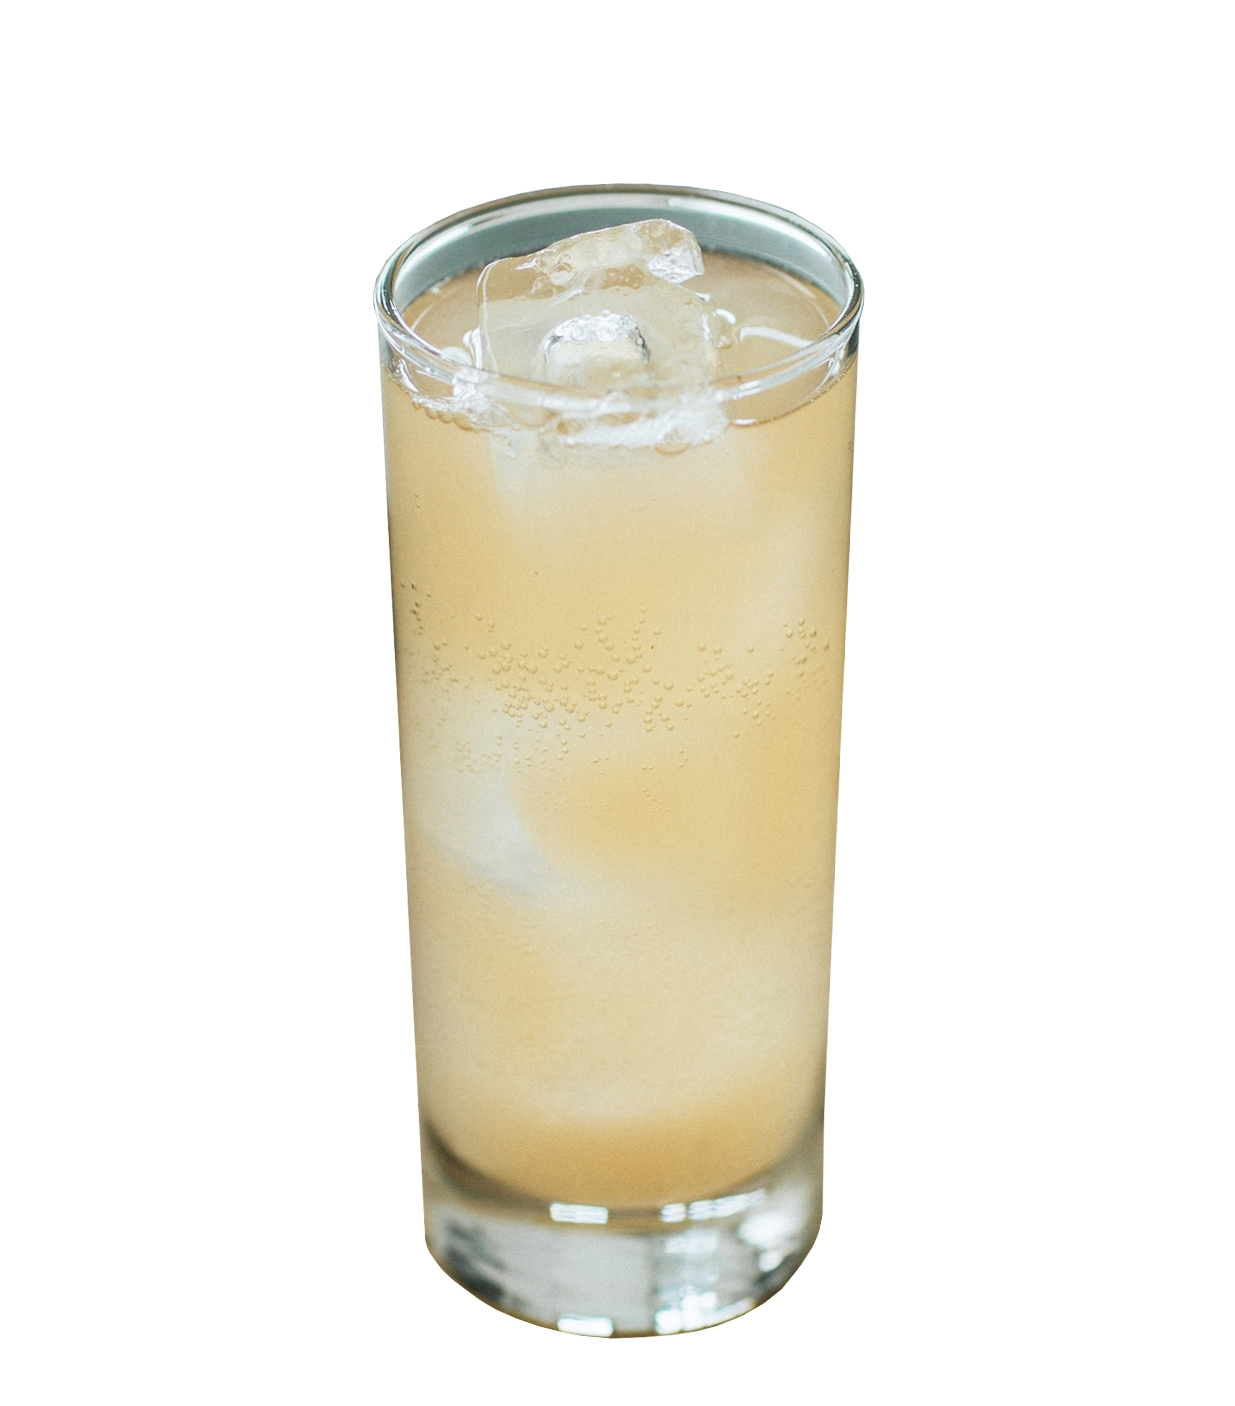 PALOMA  10ml Fresh Lime Juice 10ml Fresh Grapefruit Juice 55ml Norseman Agave Americana Grapefruit Soda  Build on ice in a tall cocktail glass and top with grapefruit soda, stirring to combine.